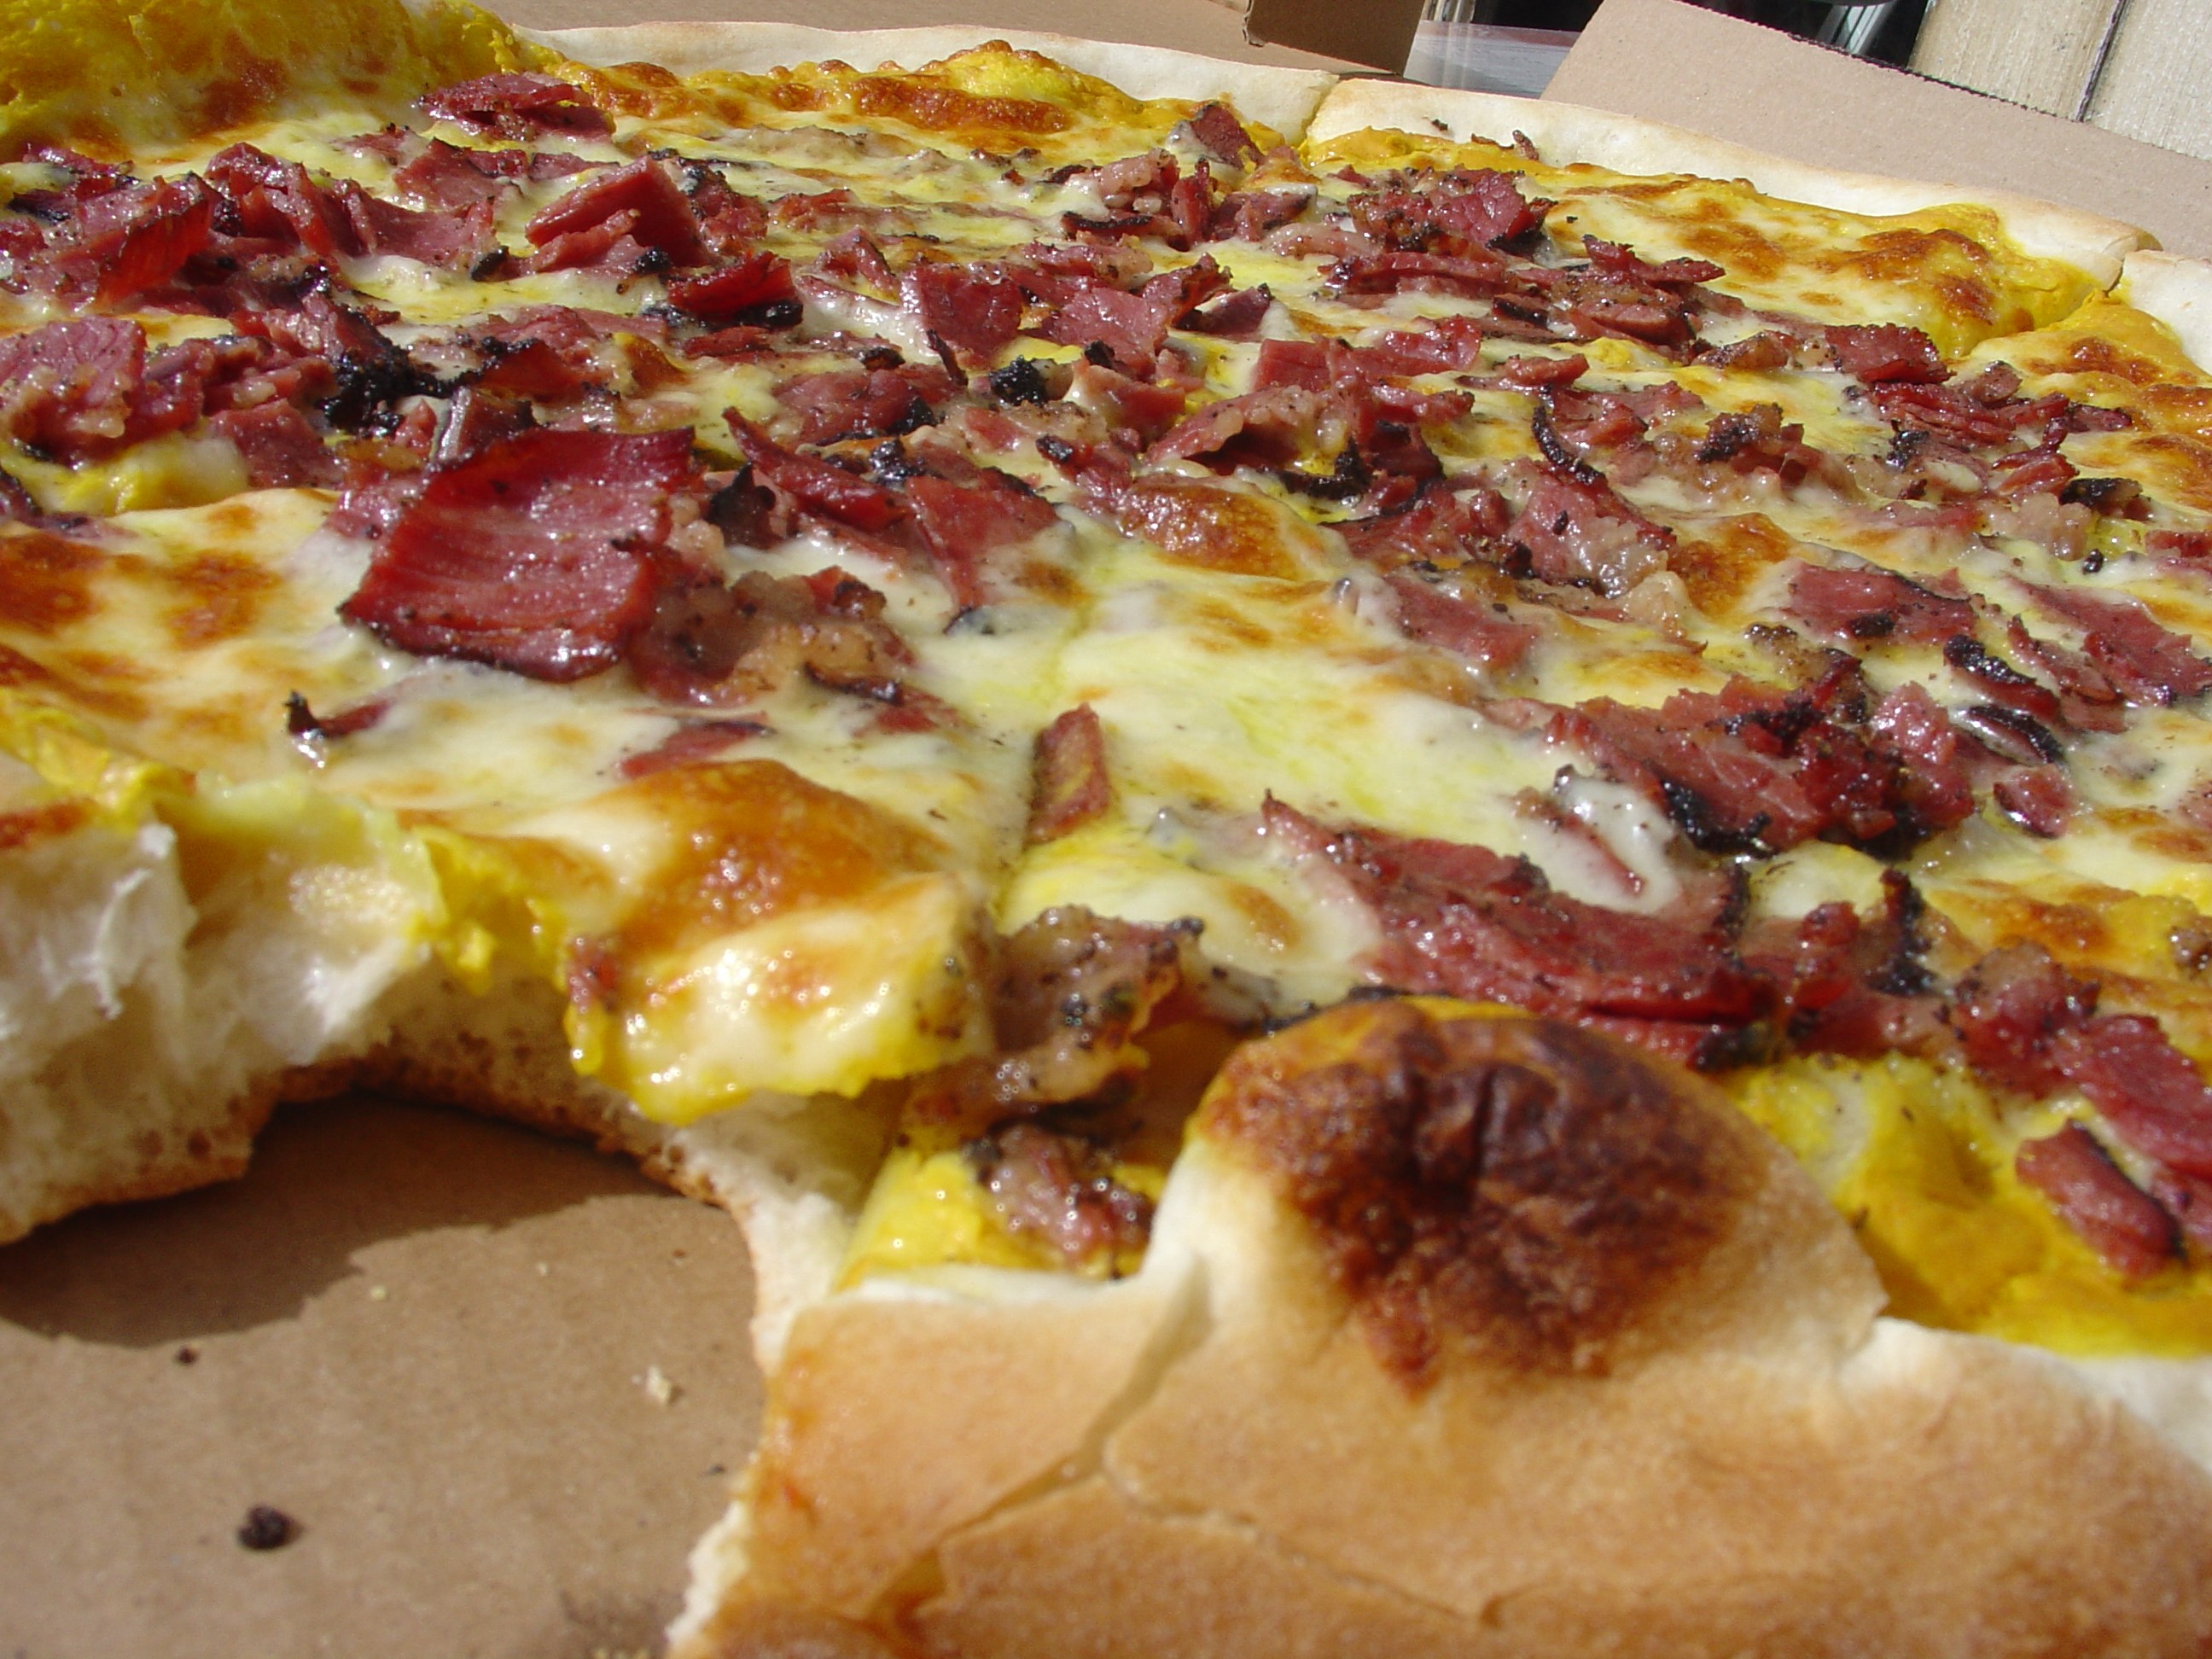 File:Pastrami pizza.jpg - Wikipedia, the free encyclopedia